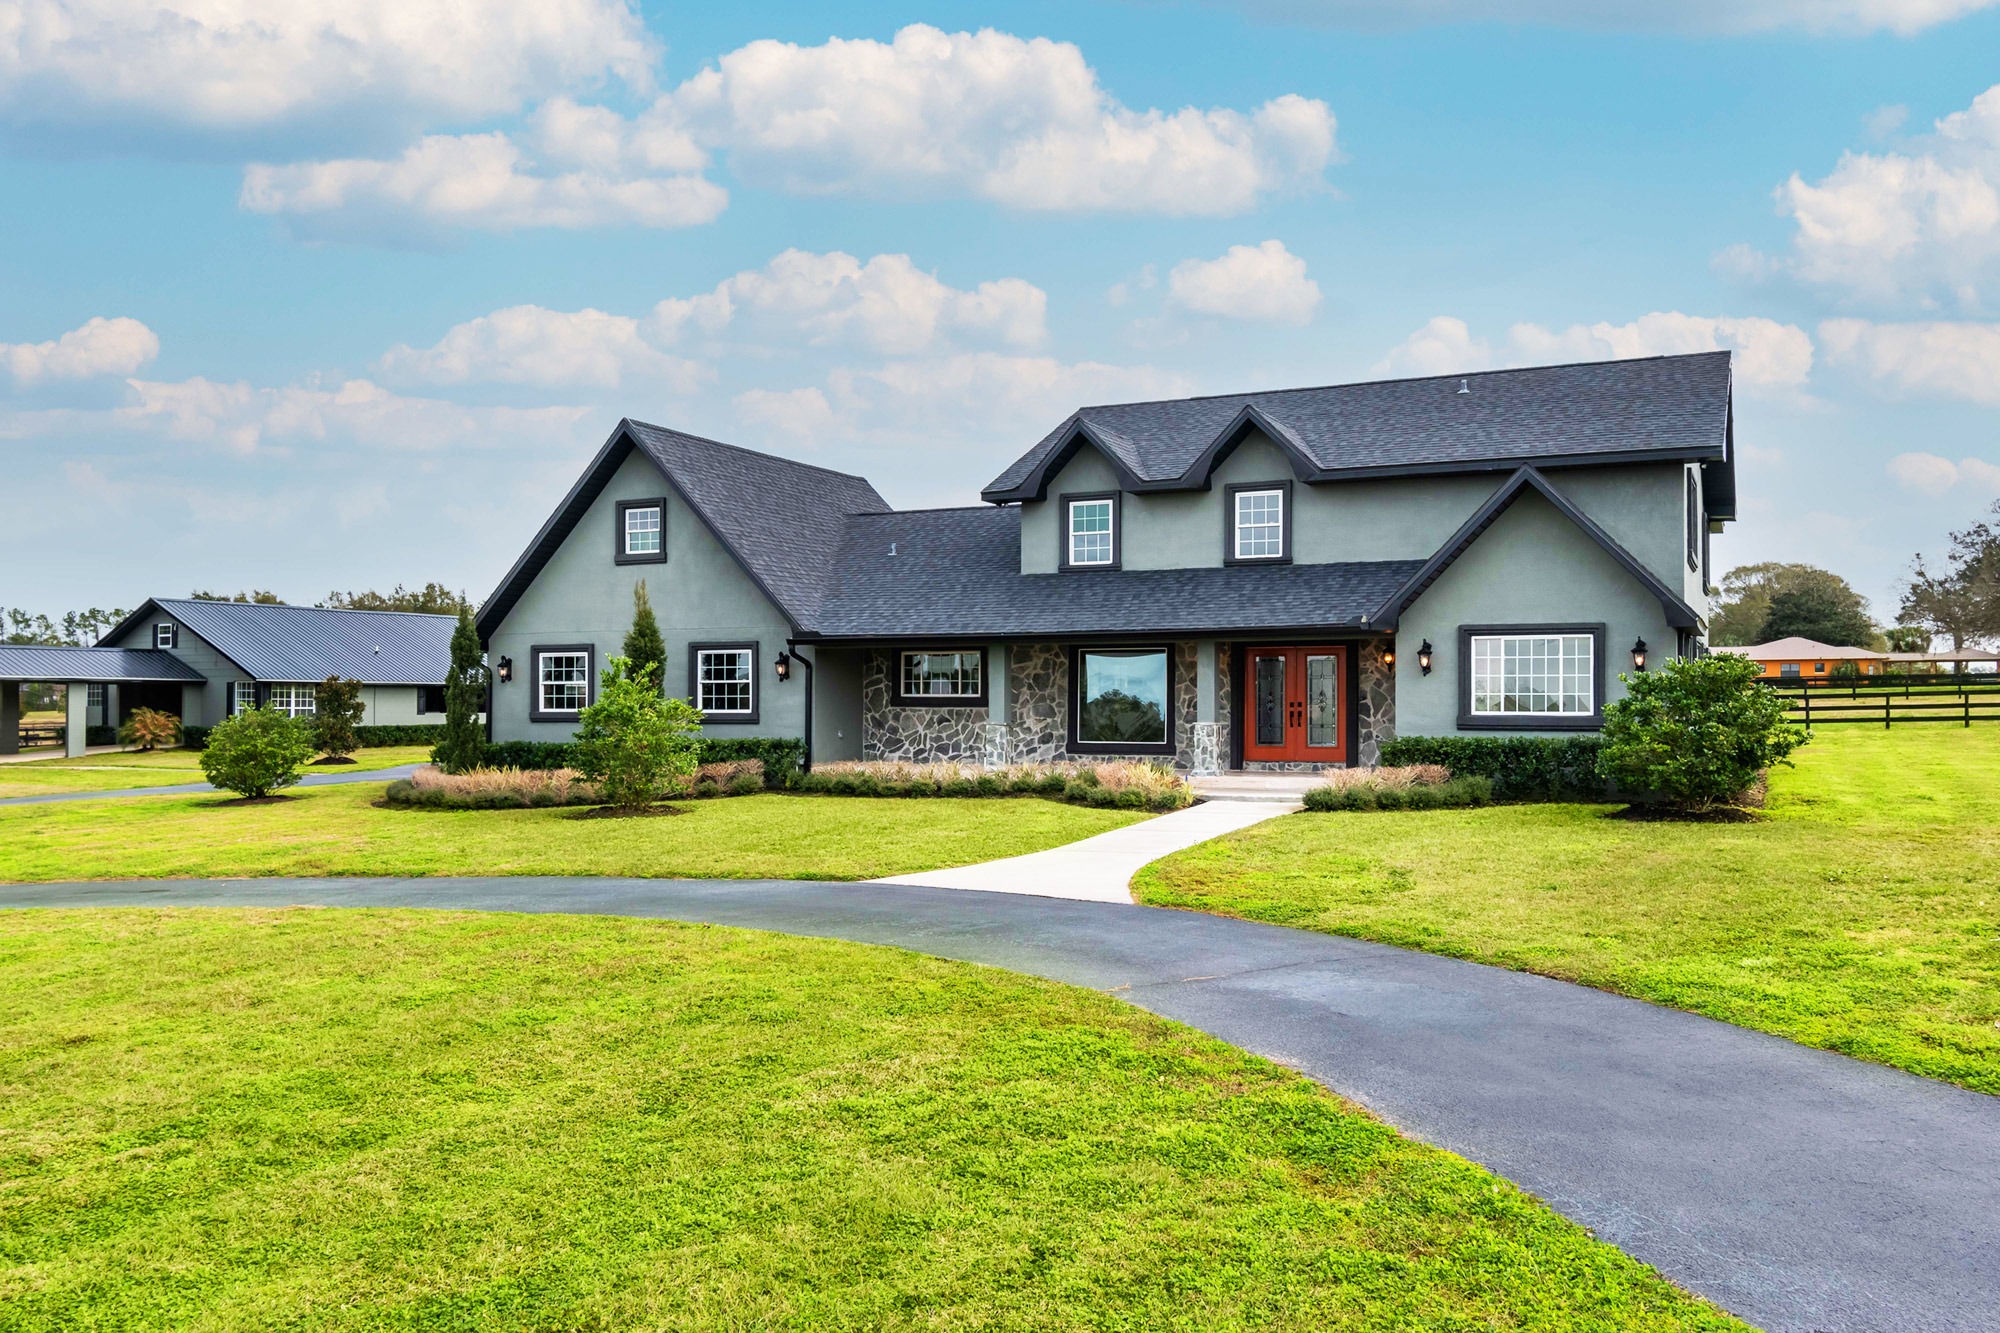 Click to view farms over $750,000